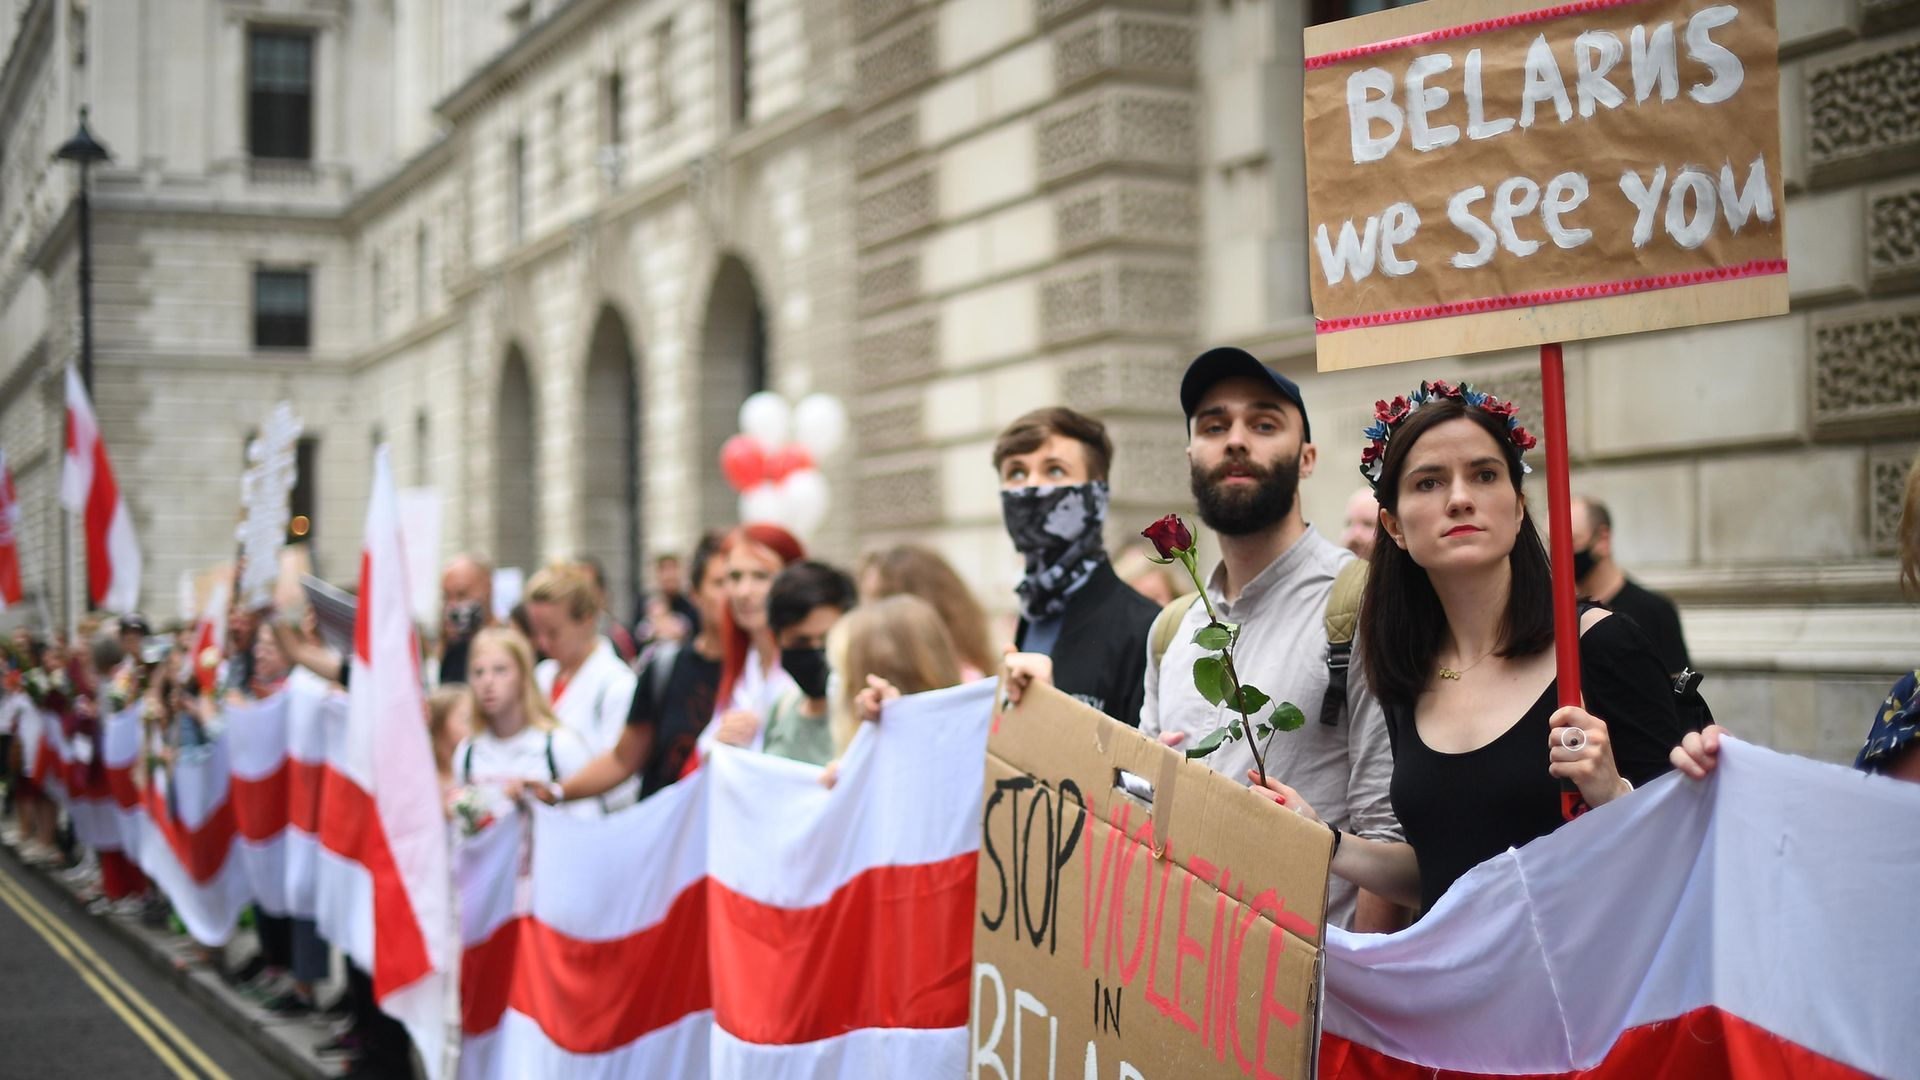 A demonstration outside the Foreign & Commonwealth Office in central London calling for authoritarian President Alexander Lukashenko to resign - Credit: PA